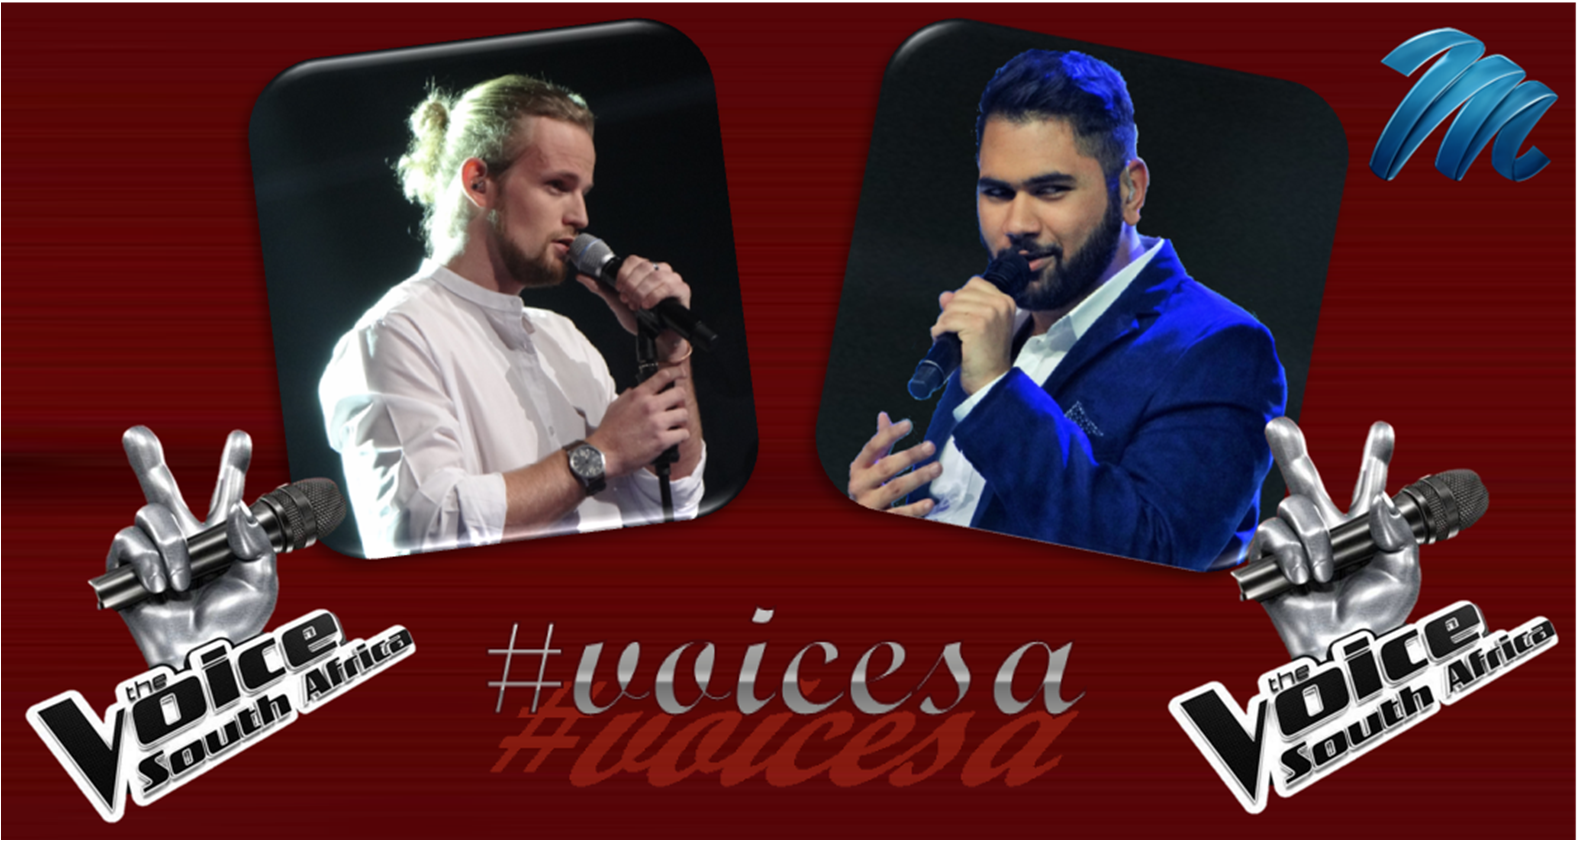 https://www.stageandscreen.co.za/wp-content/uploads/2019/01/The-Voice-Team-The-Voiced.png